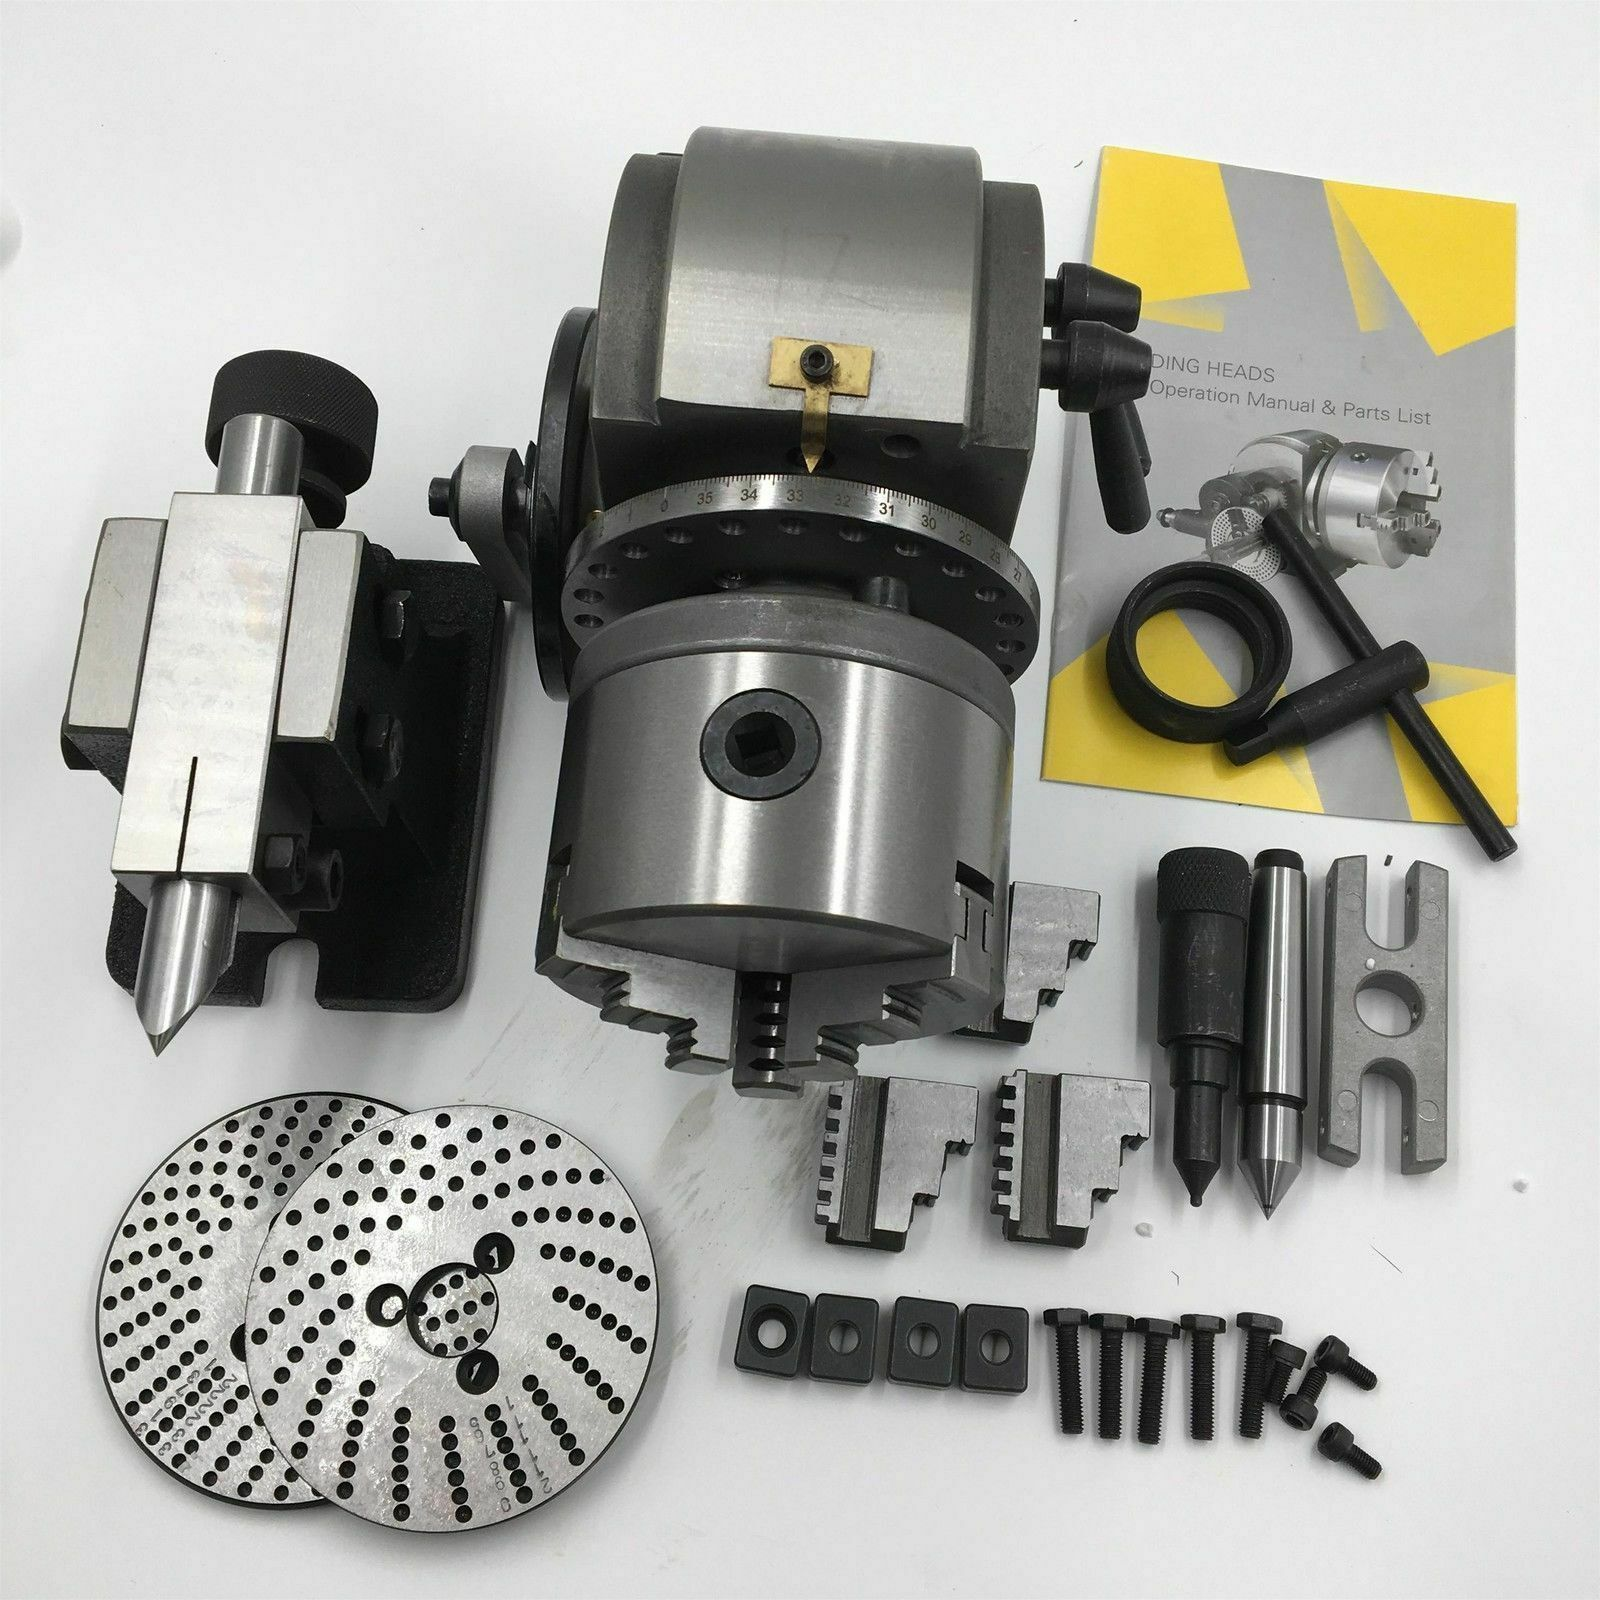 BS 0 5 Semi Universal Quick Indexing Dividing Head 3 Jaw Chuck Spiral Tailstock for CNC